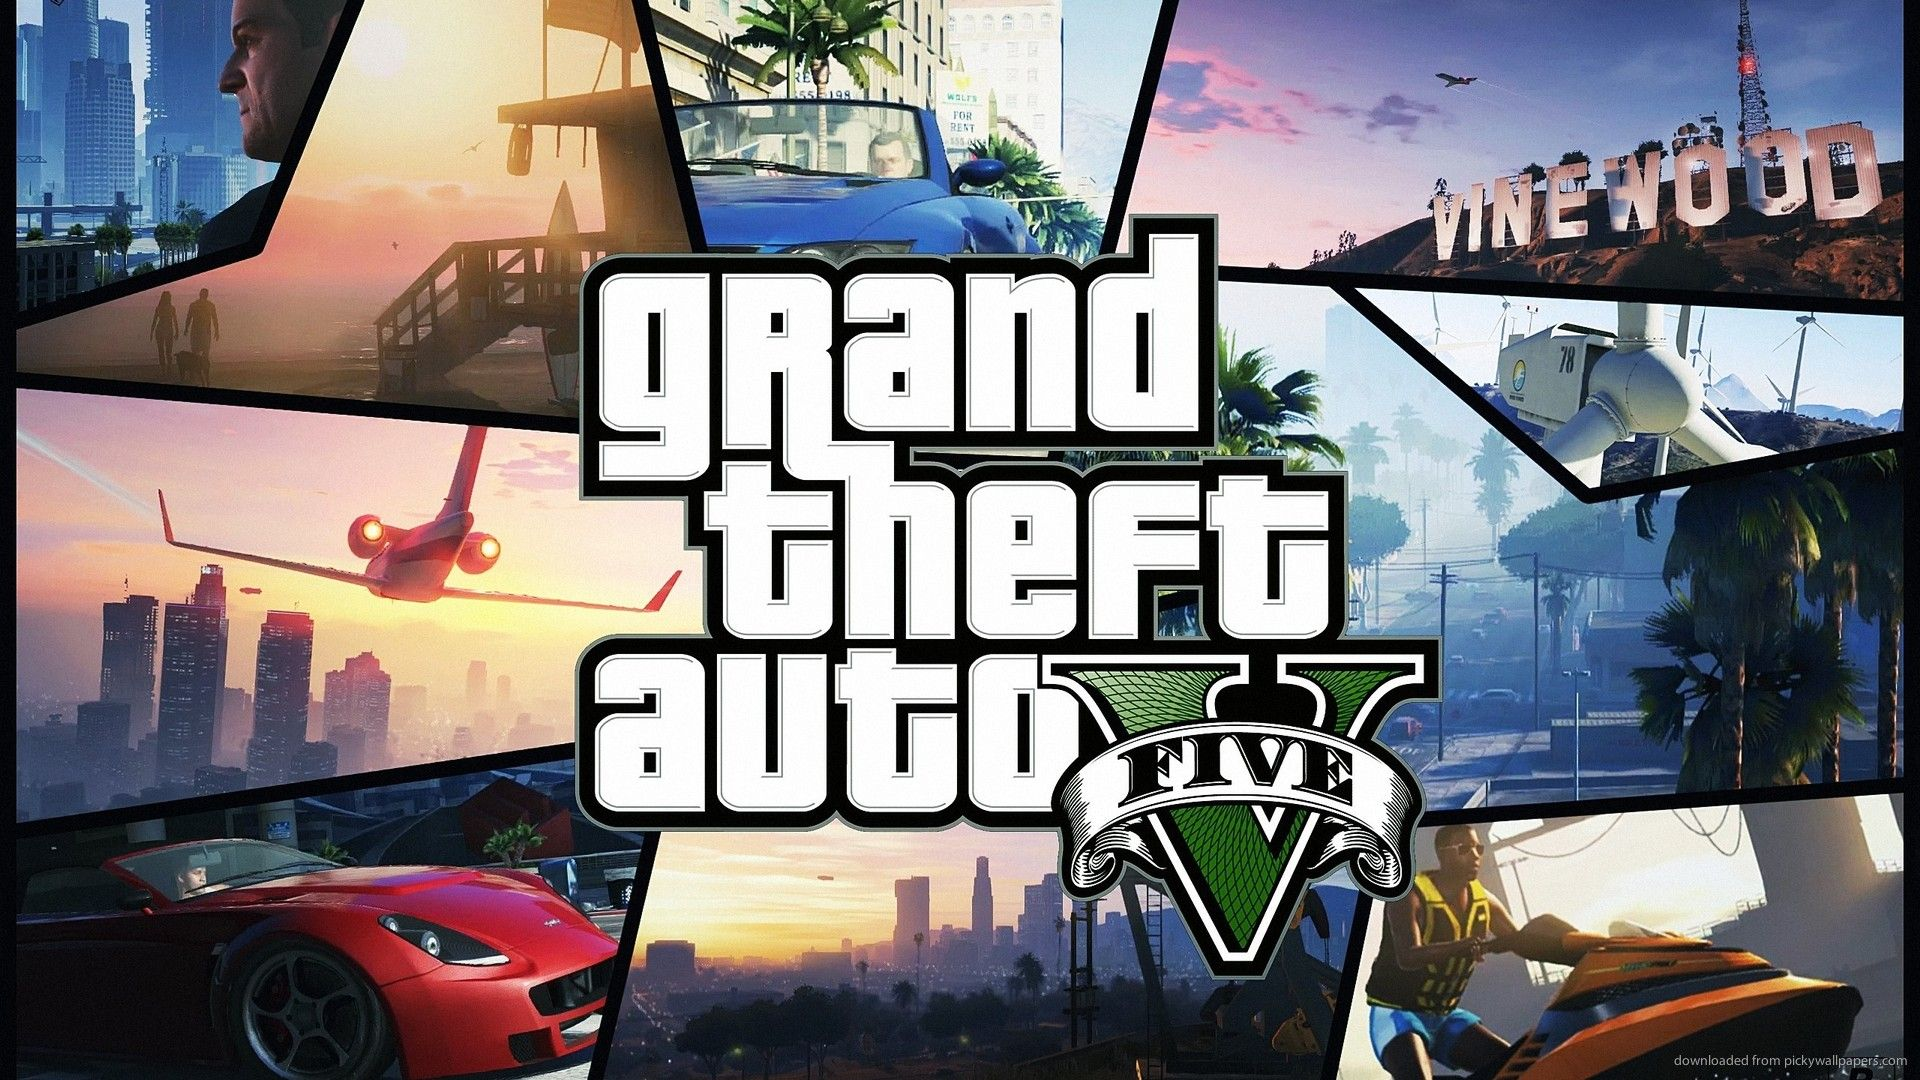 gta 5 hd wallpaper collage - http://69hdwallpapers/gta-5-hd